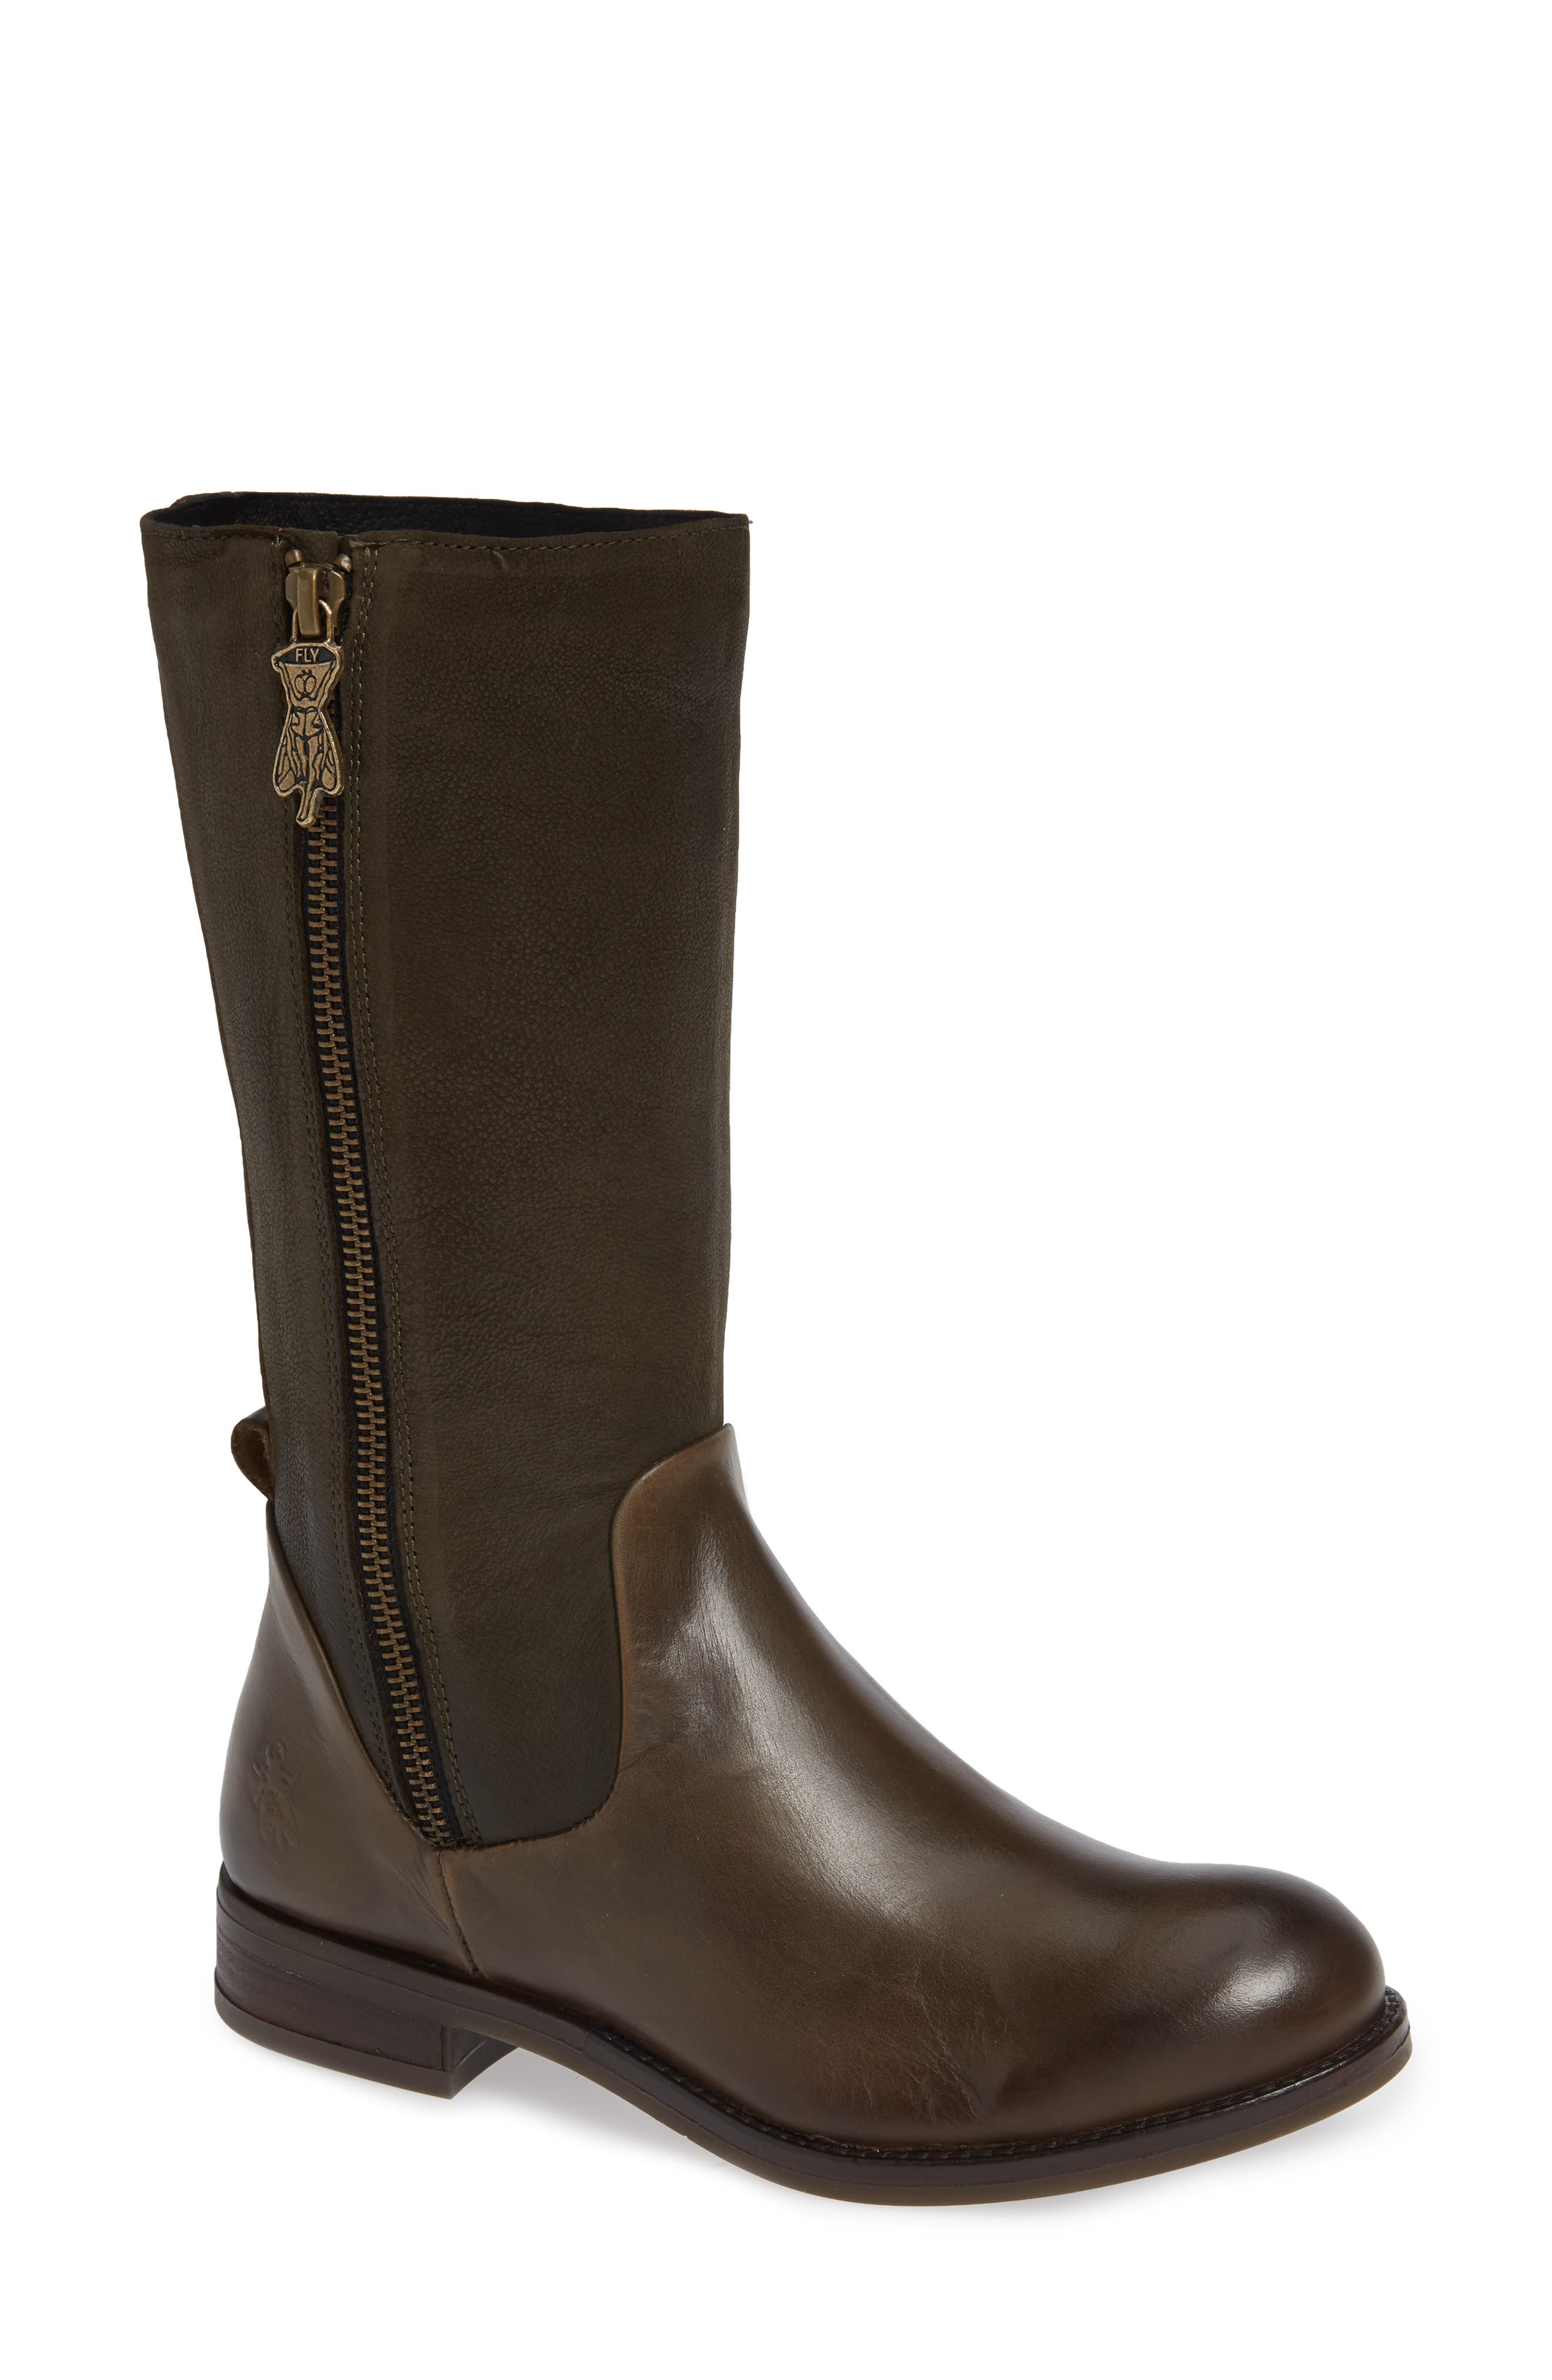 Aedi Boot,                             Main thumbnail 1, color,                             OLIVE/ SEAWEED LEATHER